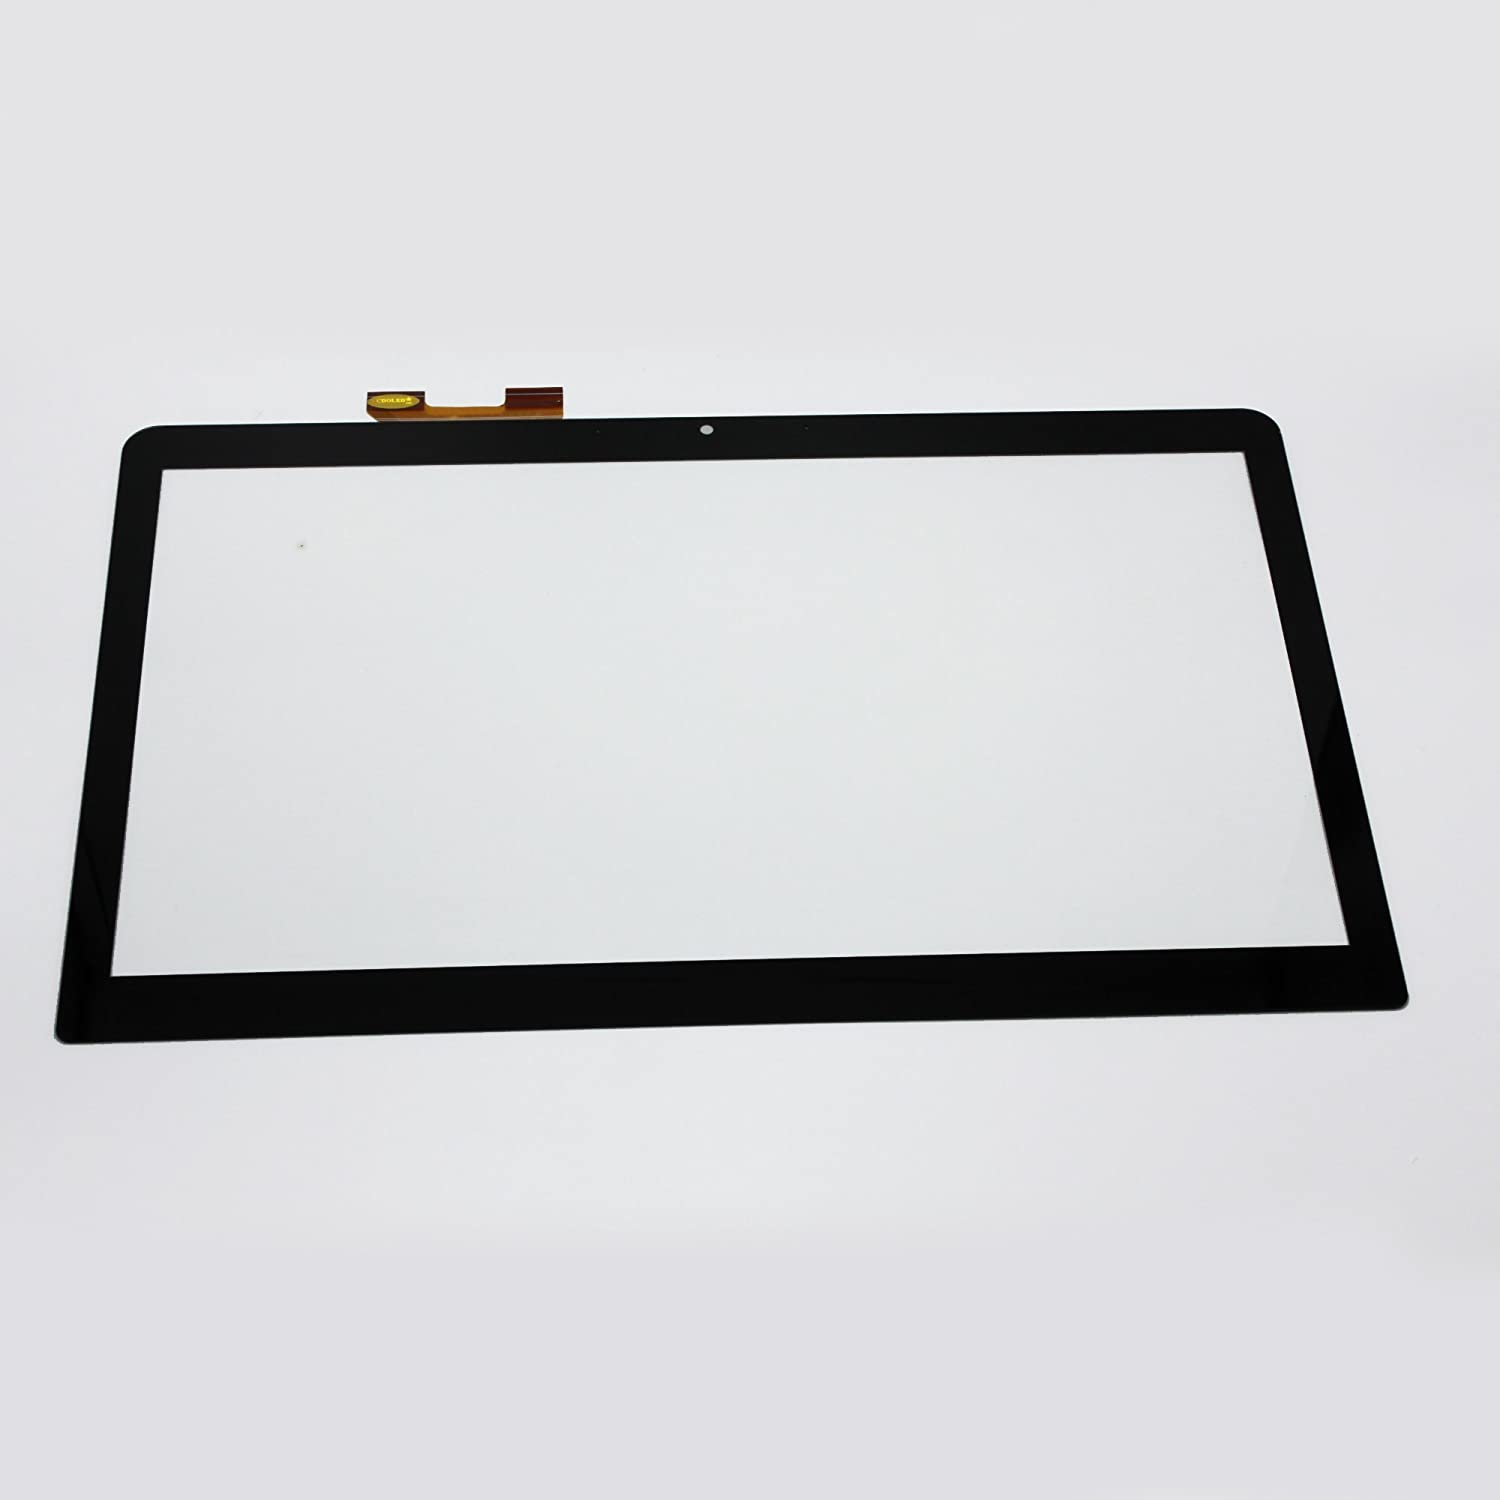 LCDOLED 15.6 inch Laptop Replacement for Dell Inspiron 15 7537 Touch Screen Glass Digitizer